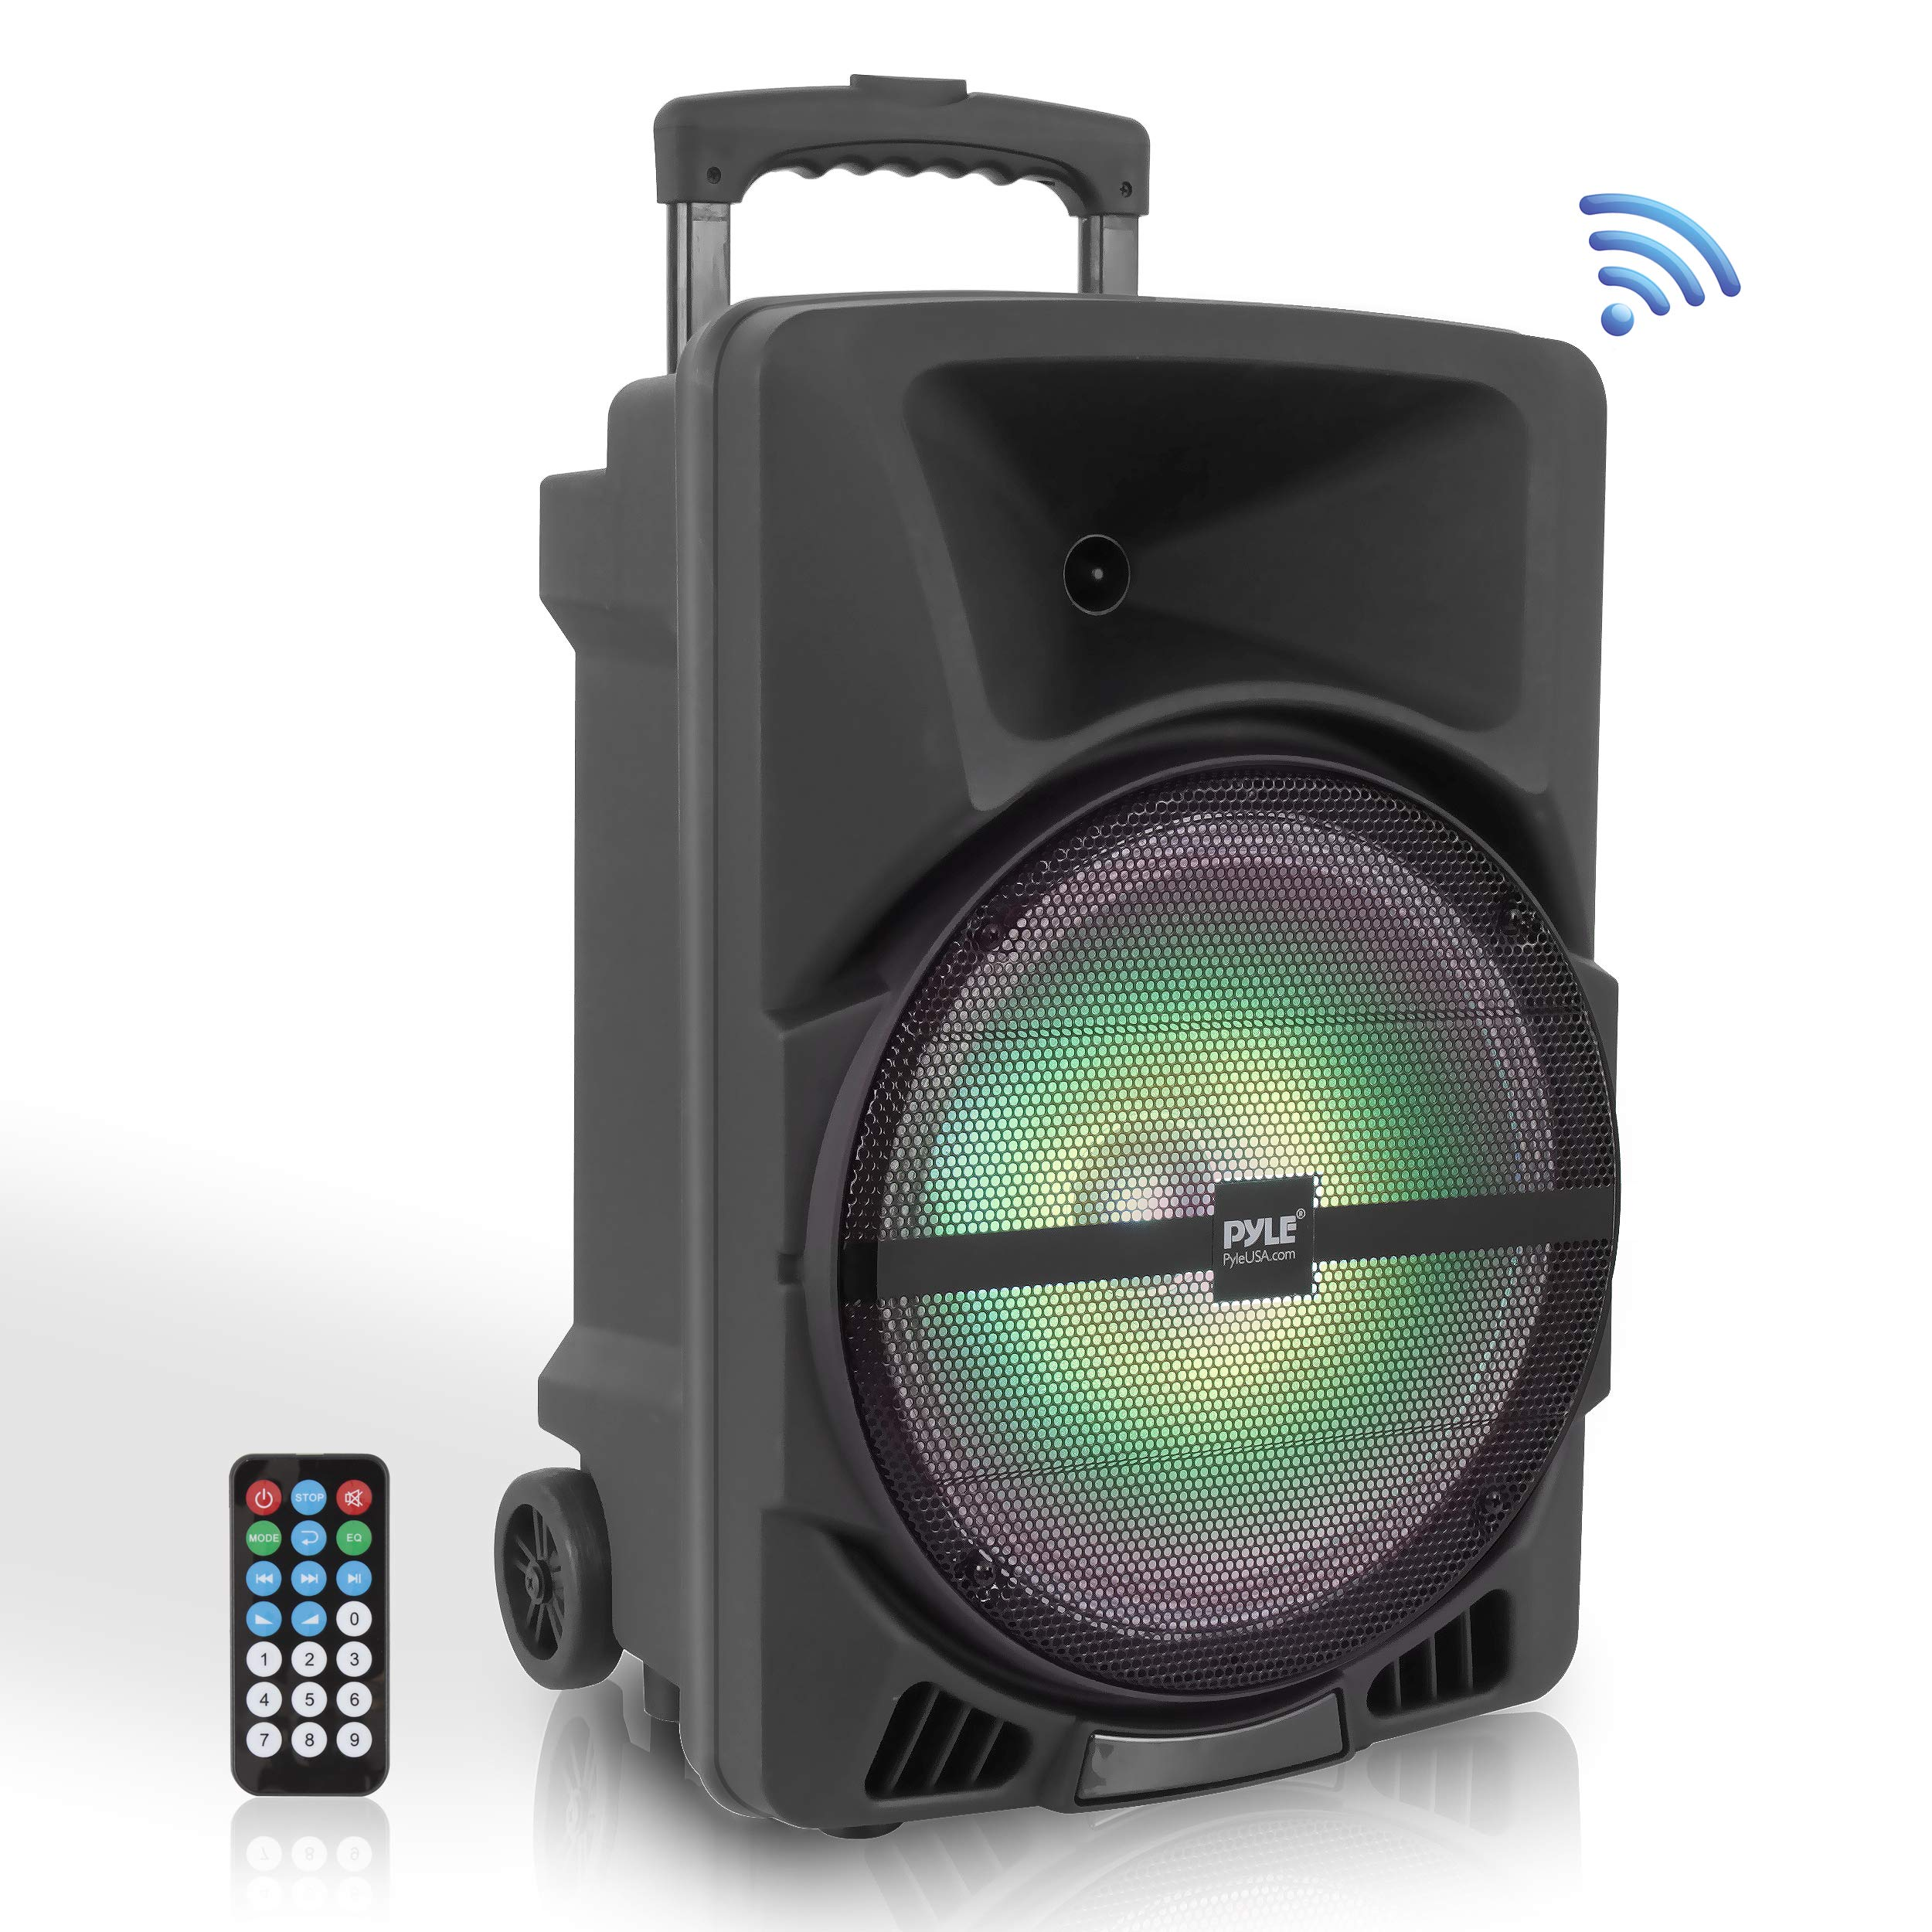 Pyle Wireless Portable Speaker System